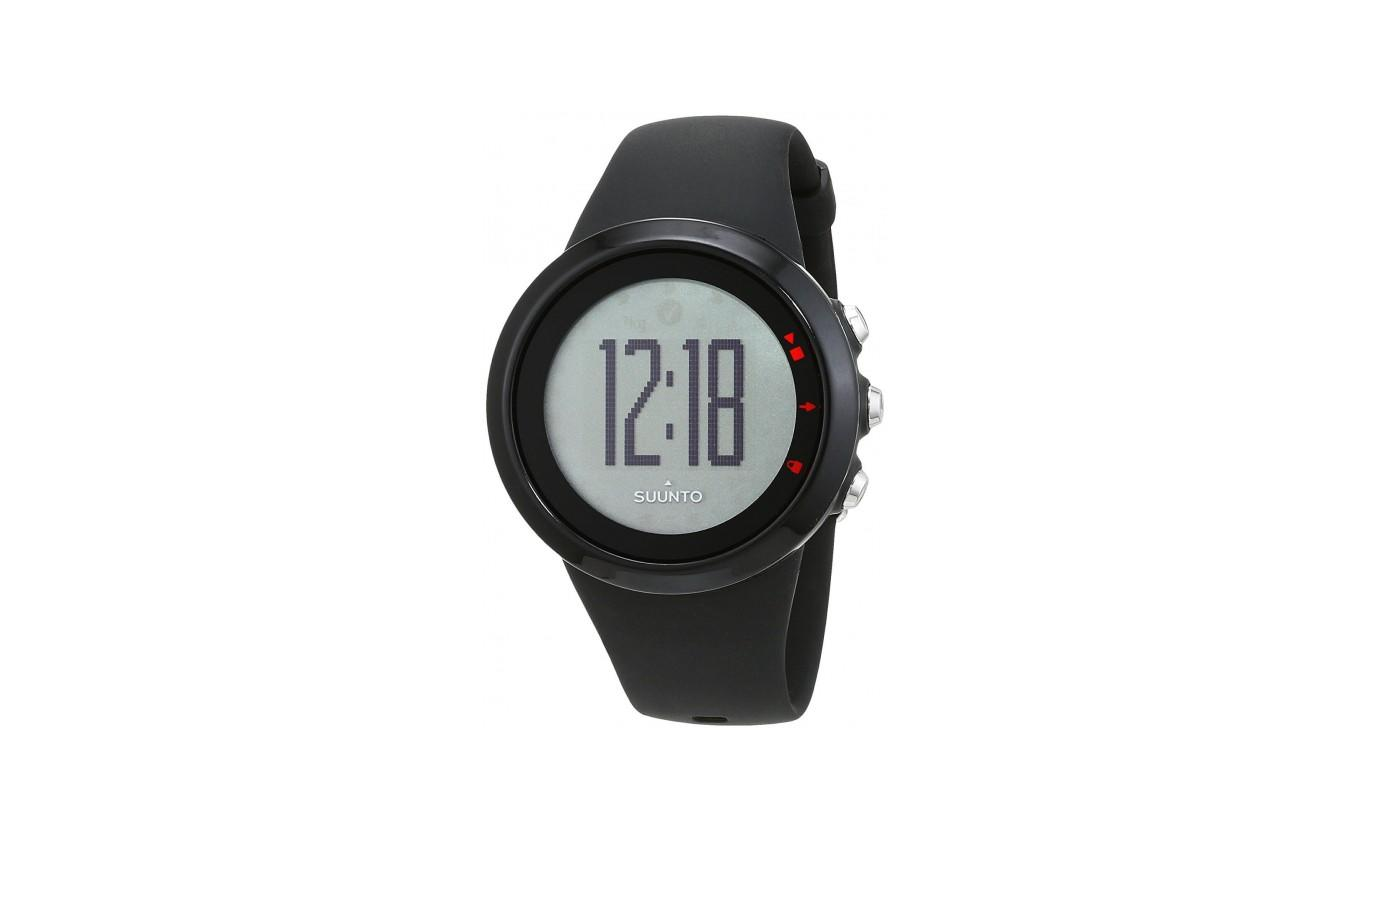 The suunto m2 works well for beginners looking for basic features